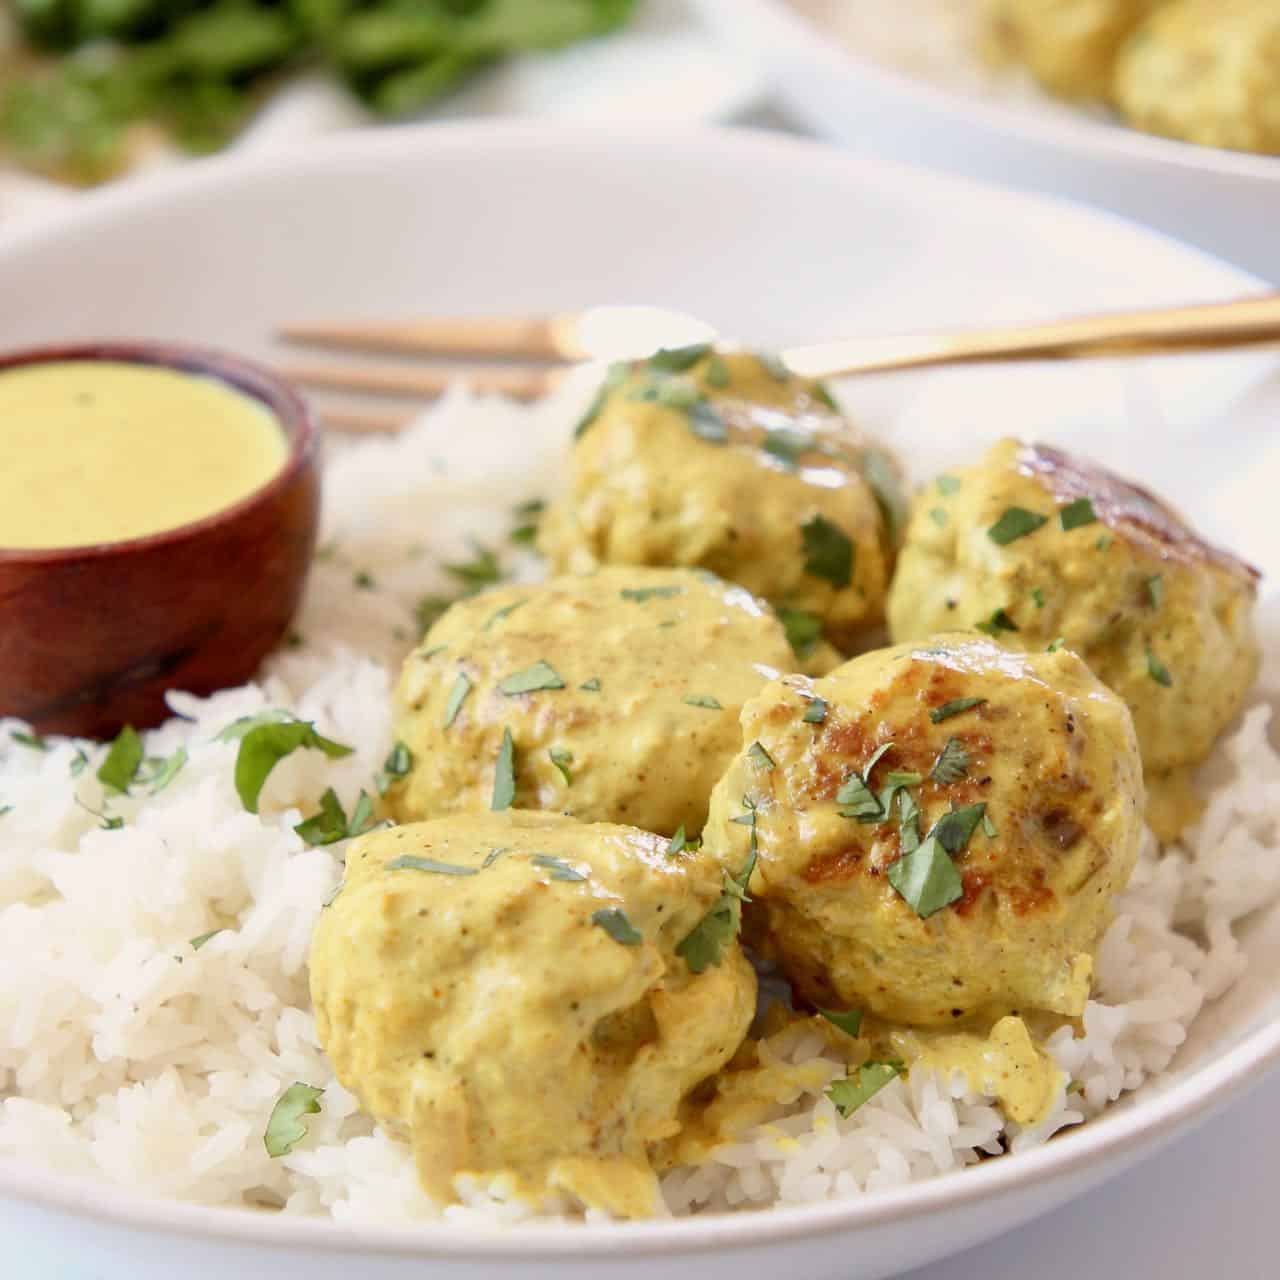 Meatballs in bowl with rice and yellow curry sauce